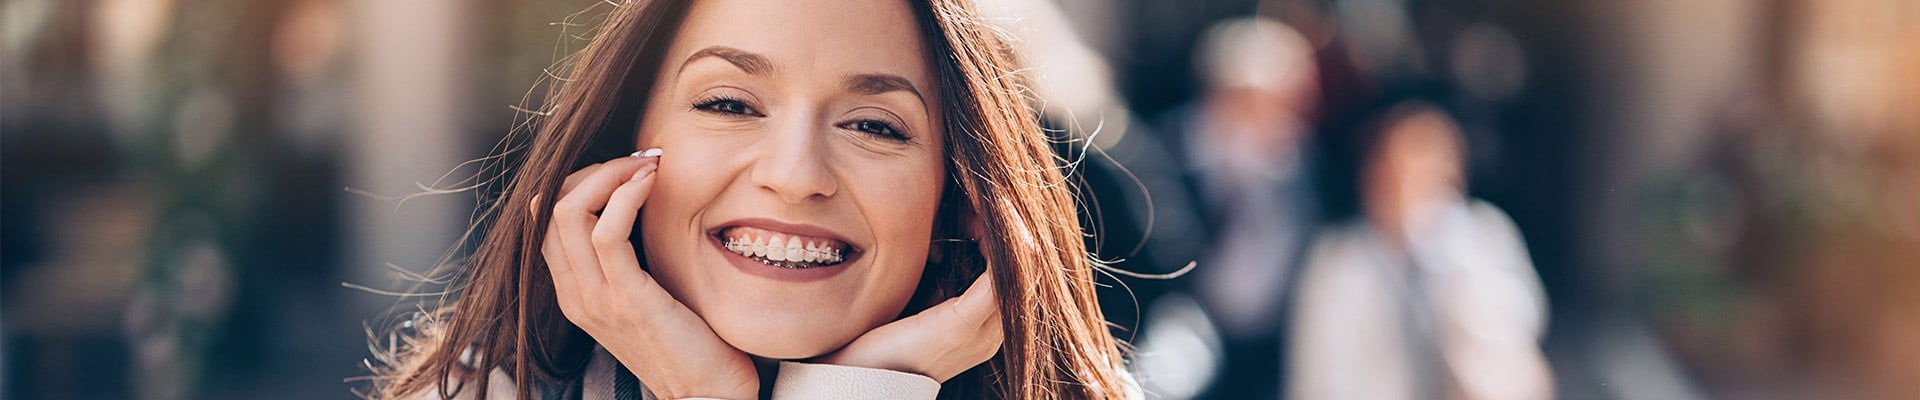 Orthodontics for adults Brace Connection in Downey, CA